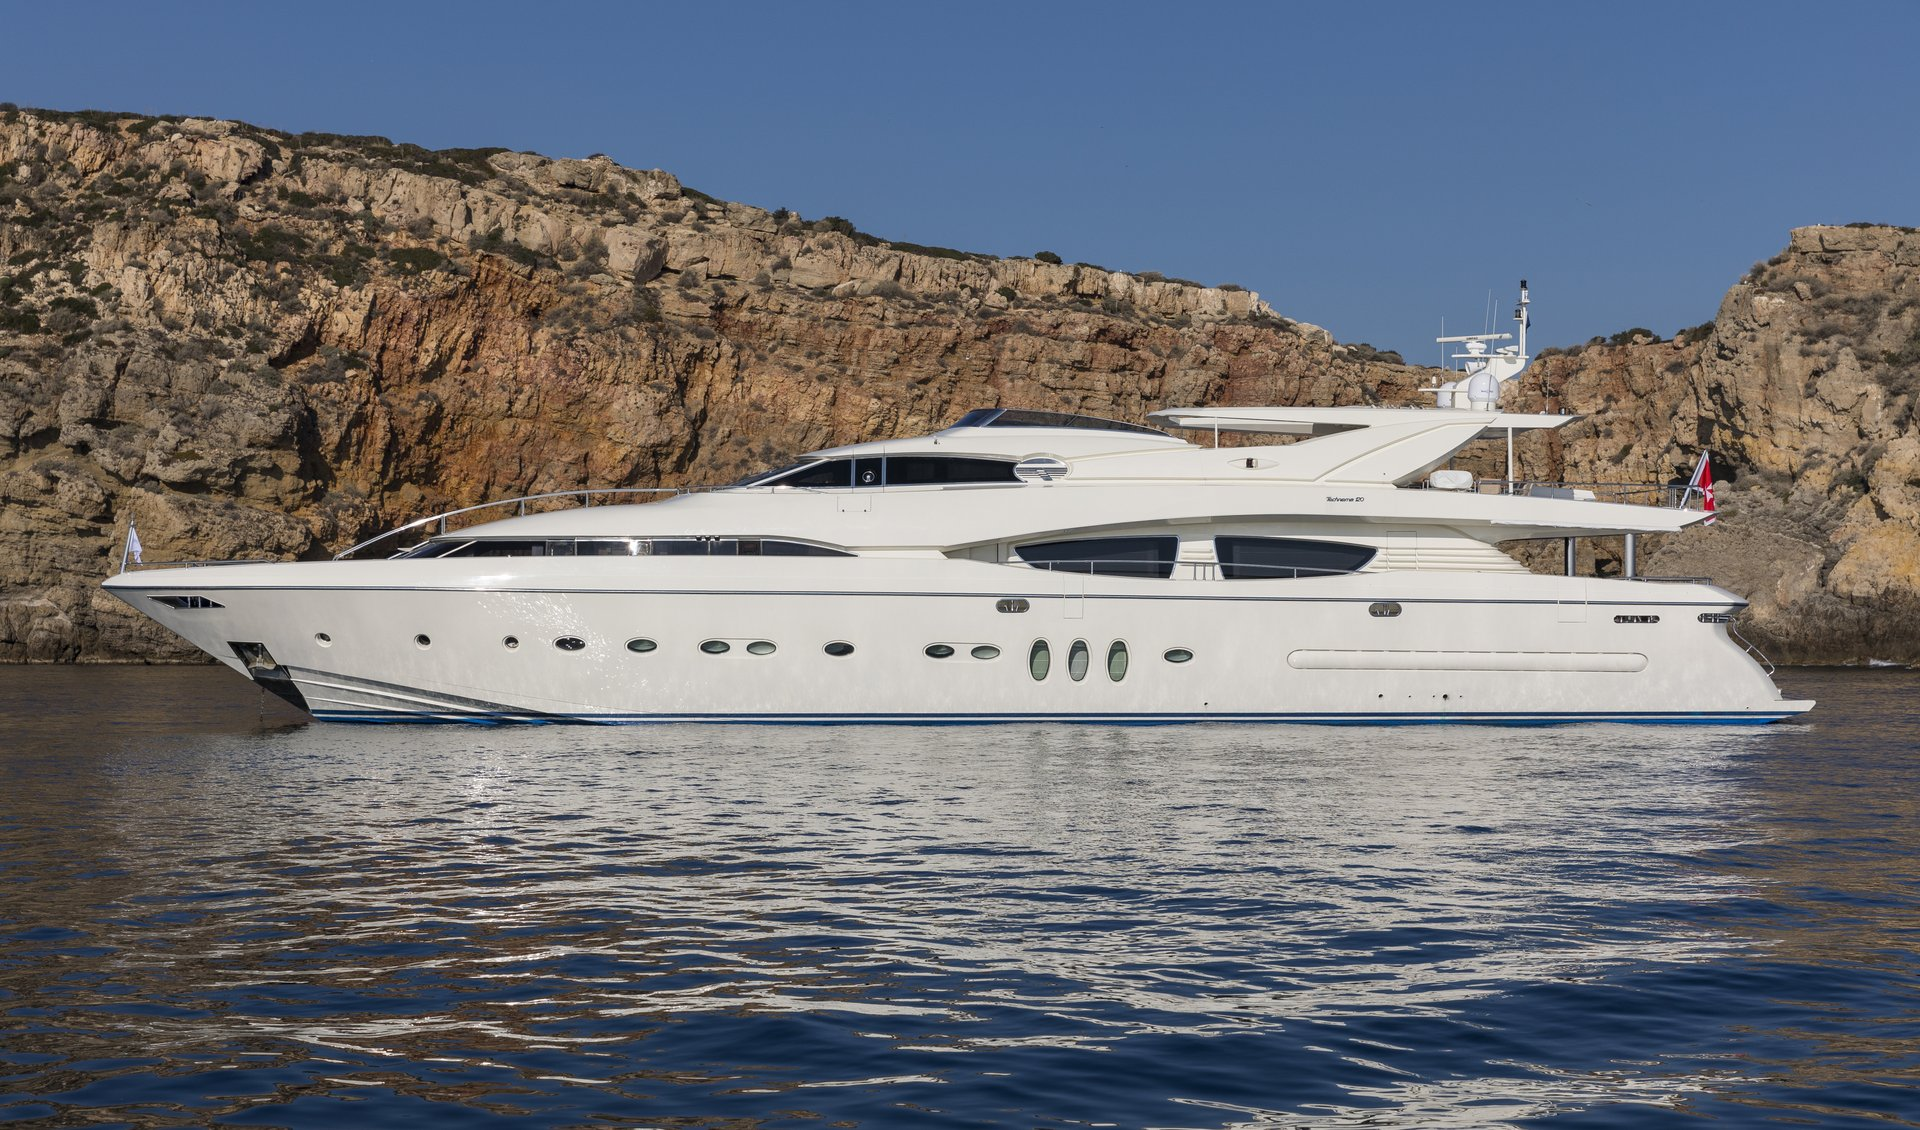 M/Y RINI V yacht for charter anchored closeup